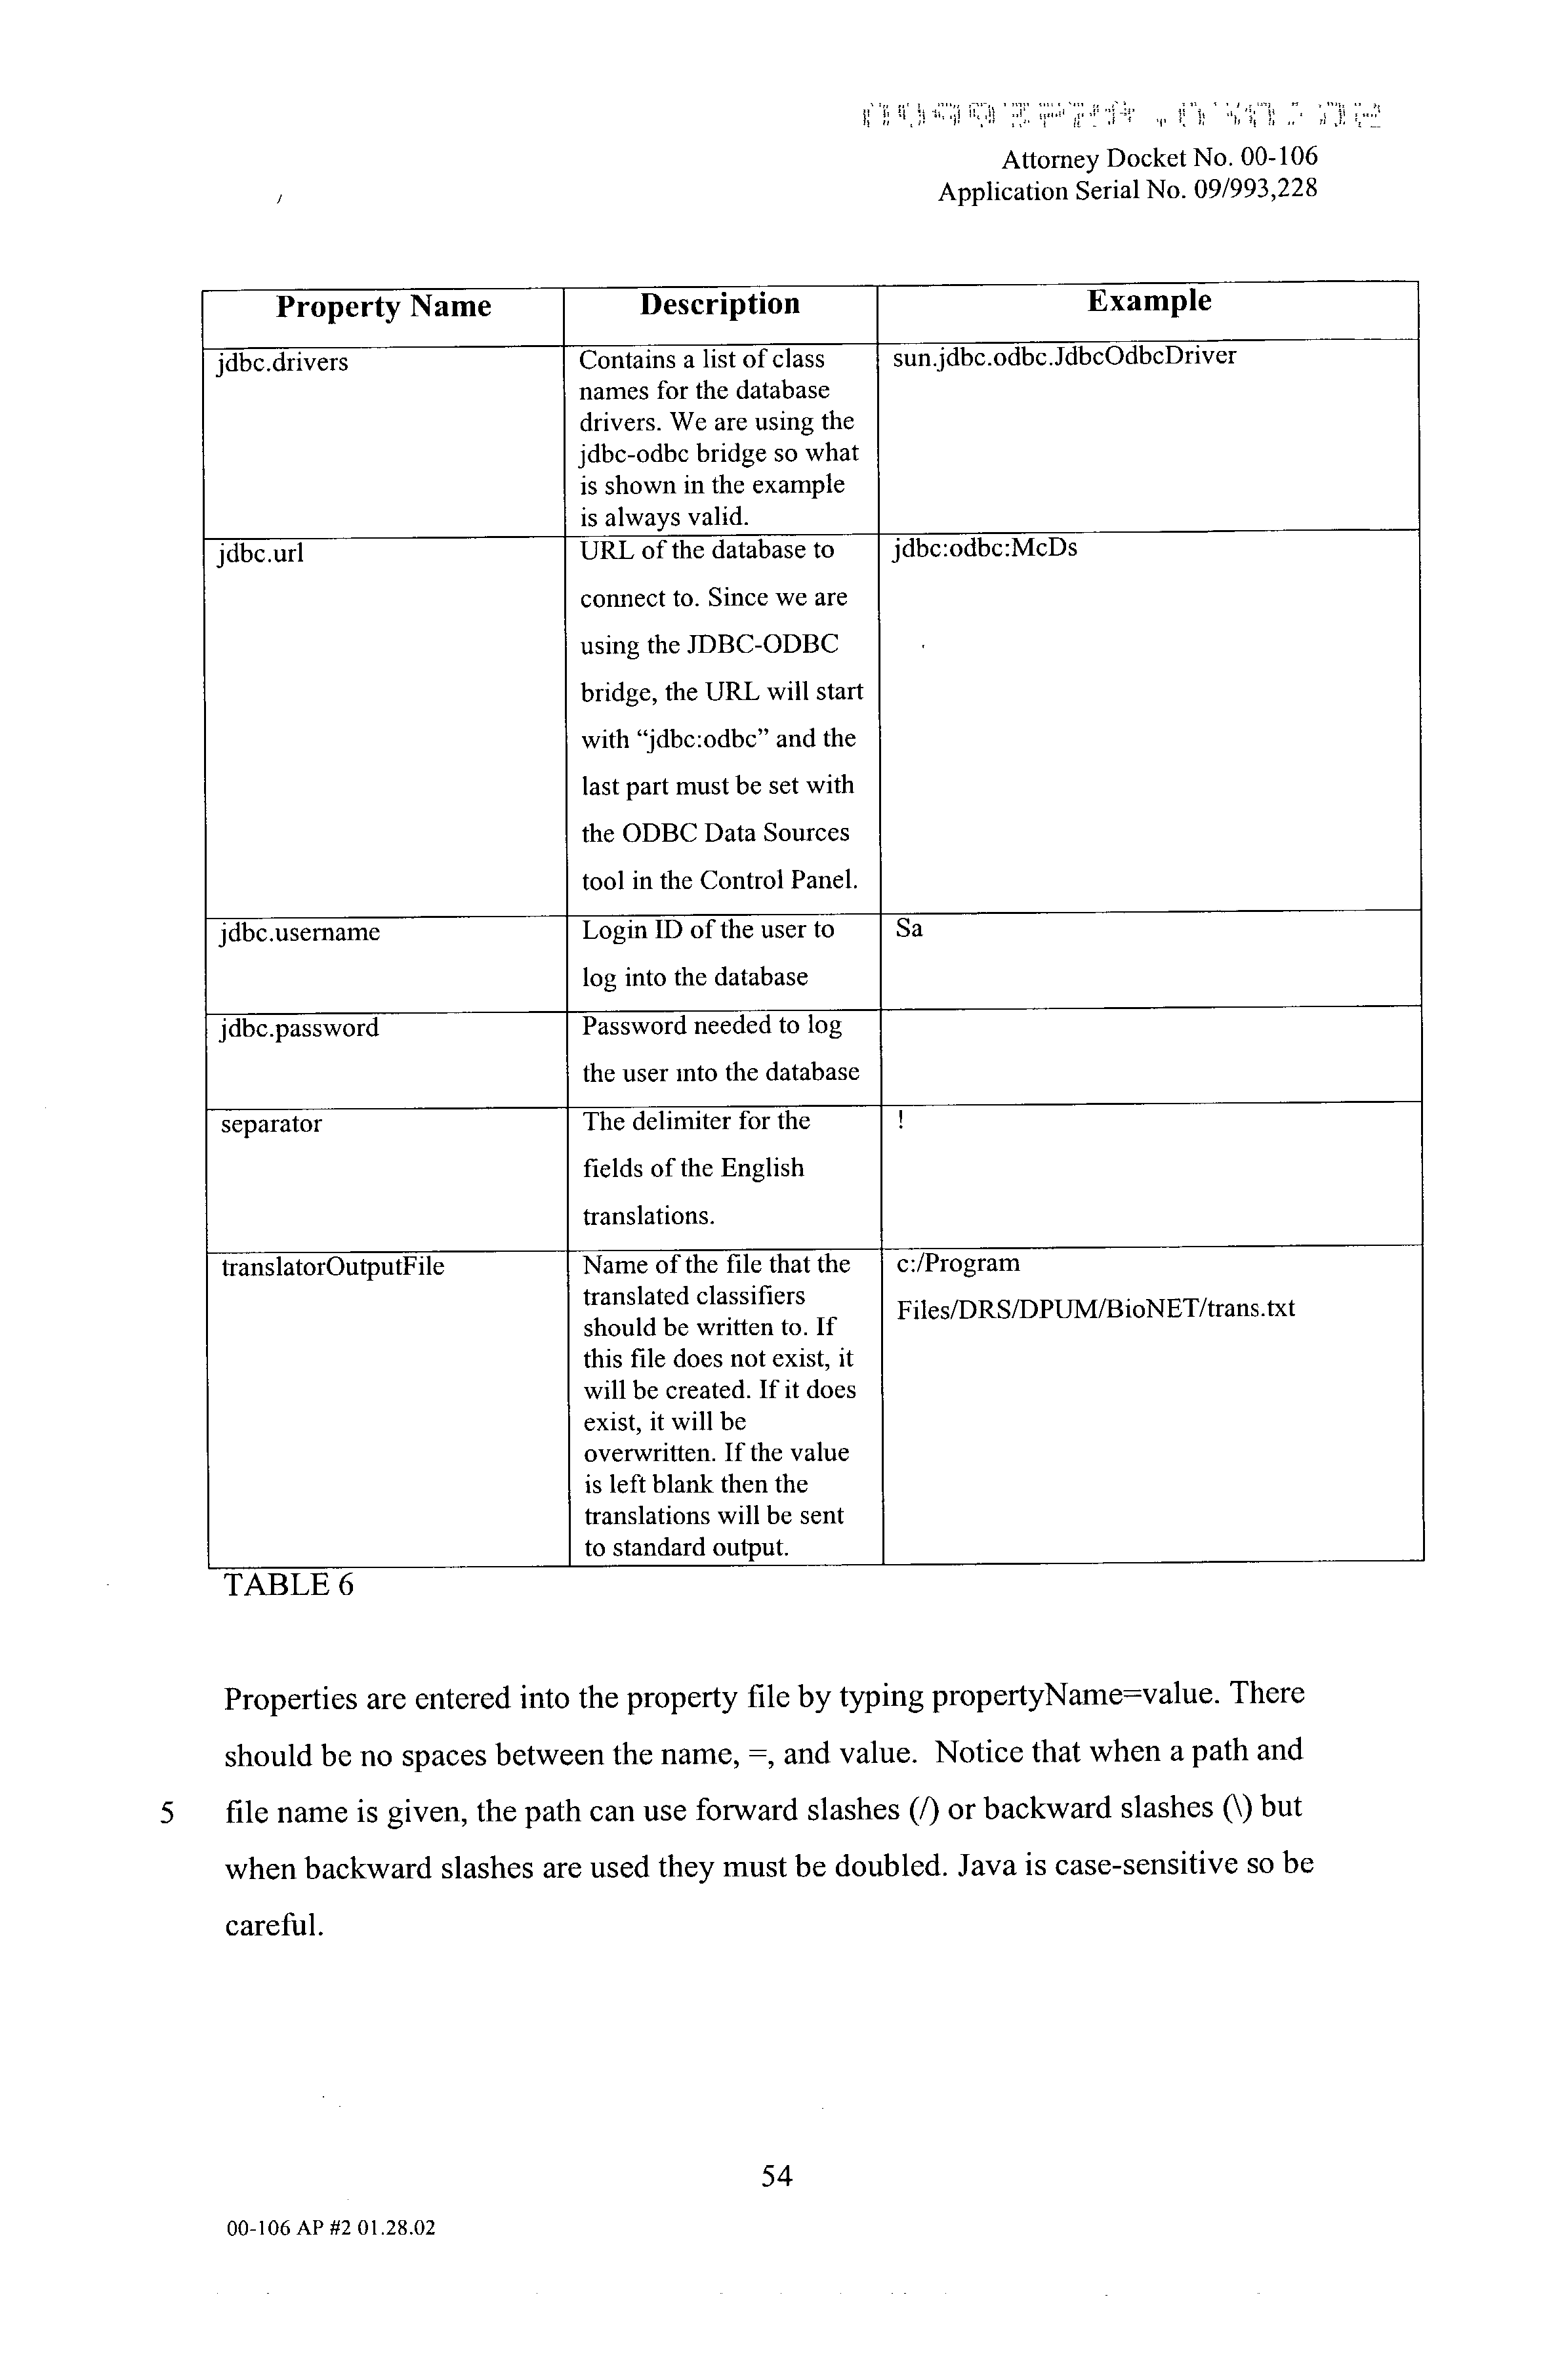 US20030083936A1 - Method and apparatus for dynamic rule and